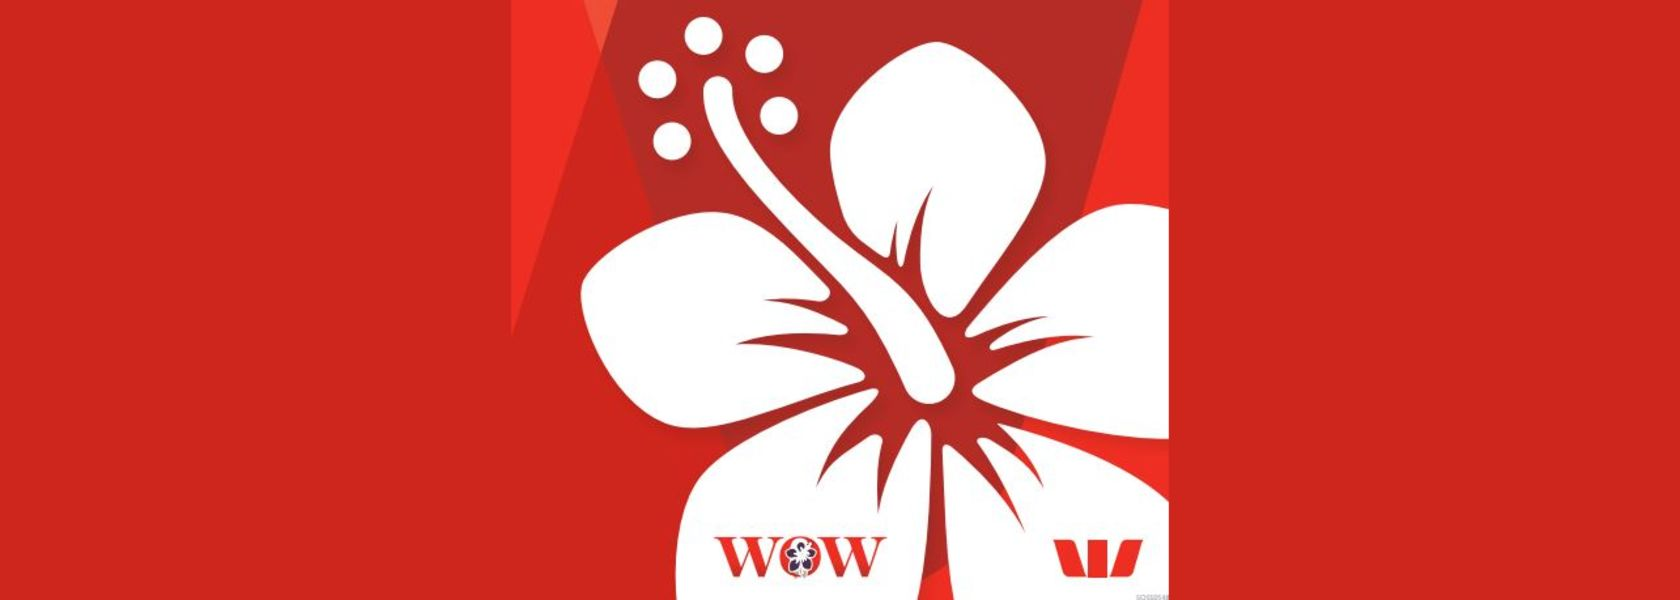 Ibbm clipart courses png Westpac awards deadline extended - PNG Report png